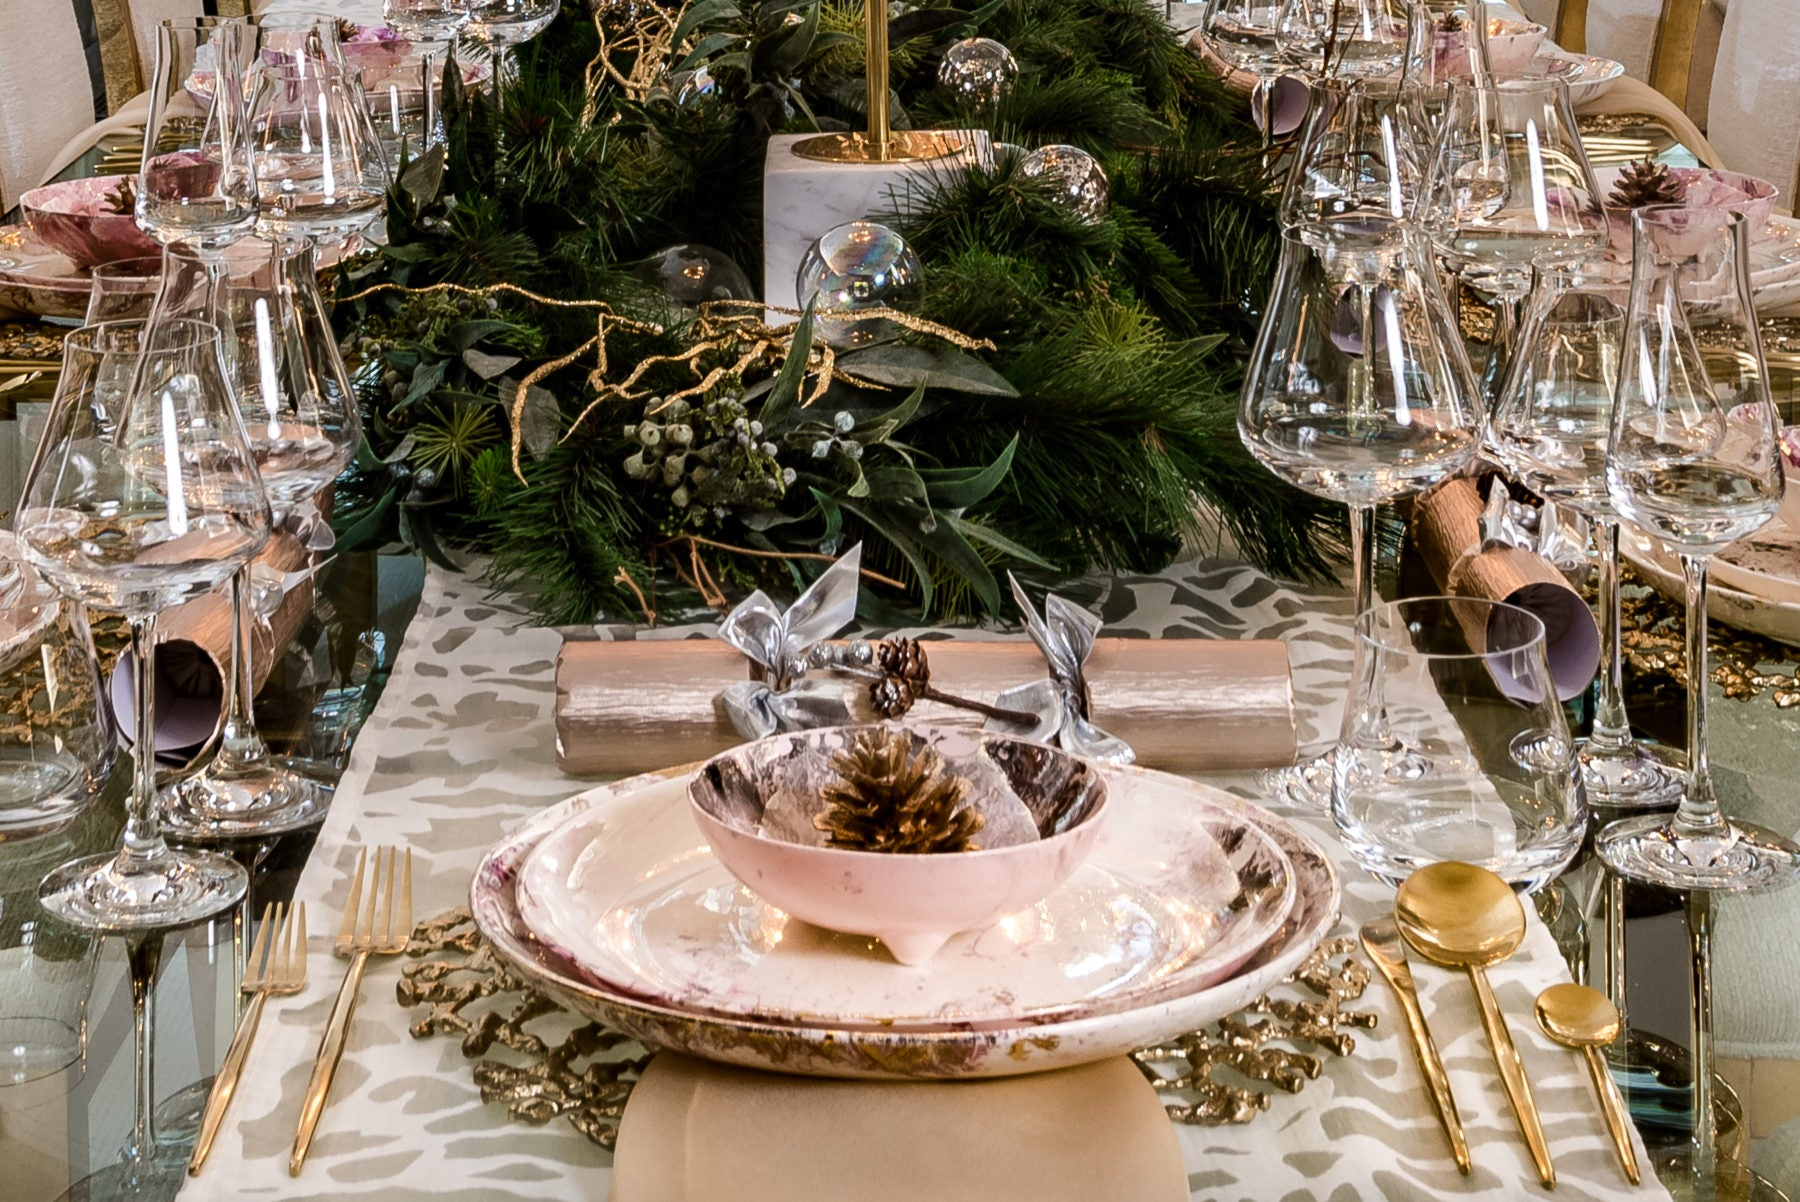 Luxury Christmas Table Setting | Muted Gold Tableware | LuxDeco.com